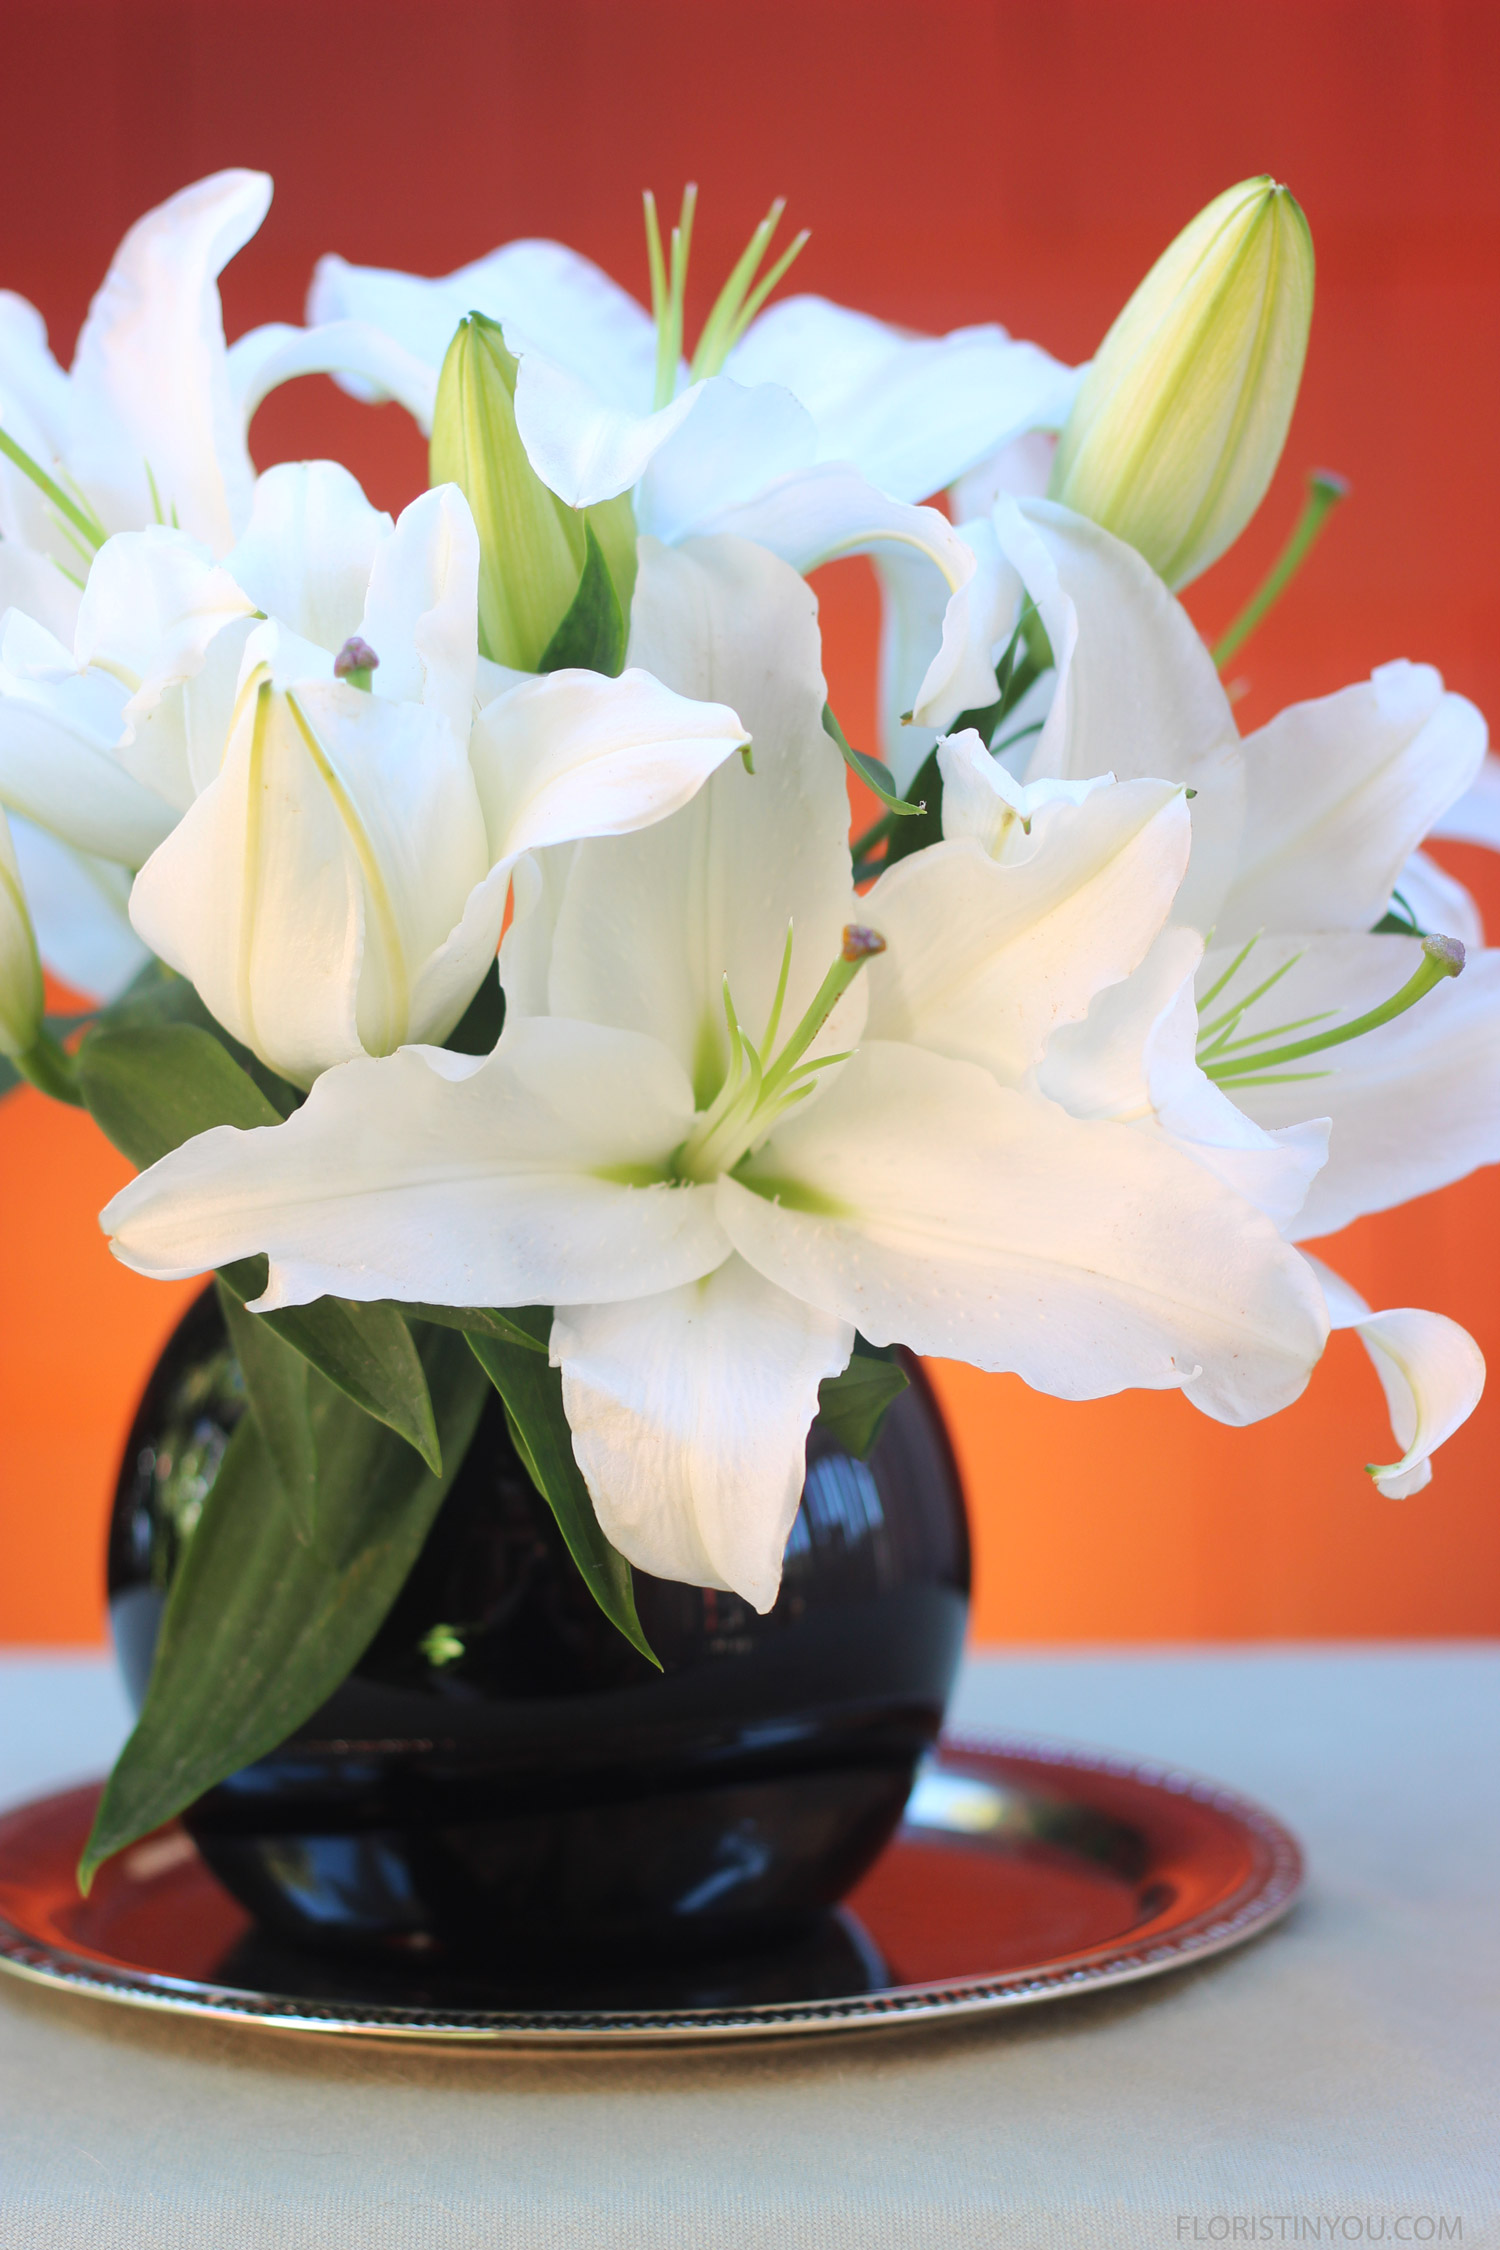 The closed lilies will open up over the next few days.